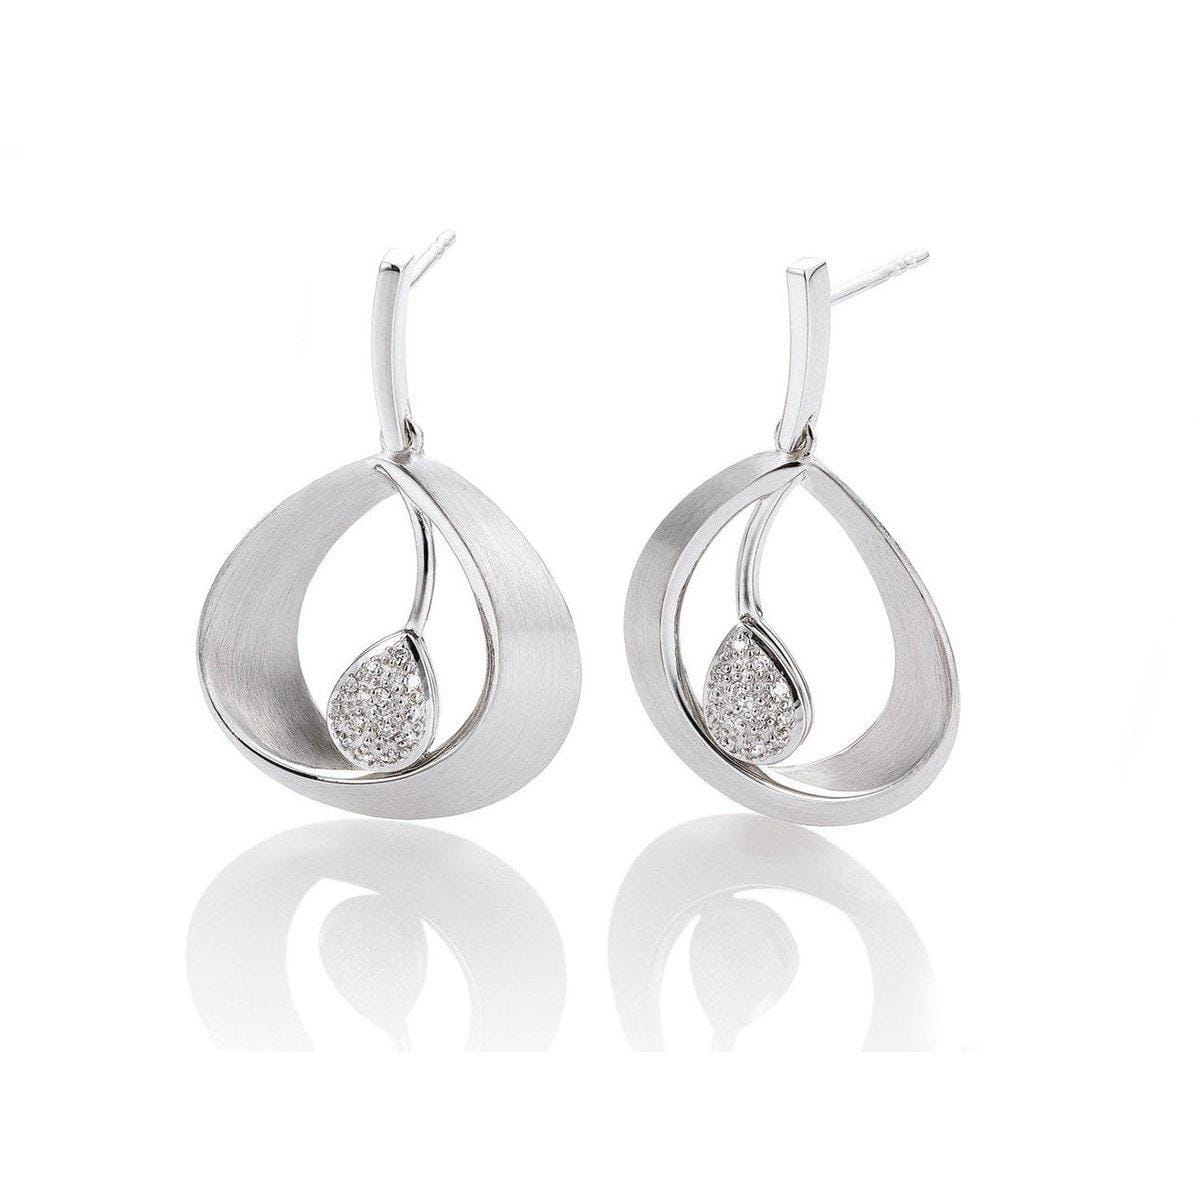 Sterling Silver Diamond Earrings - 11/03014-Breuning-Renee Taylor Gallery